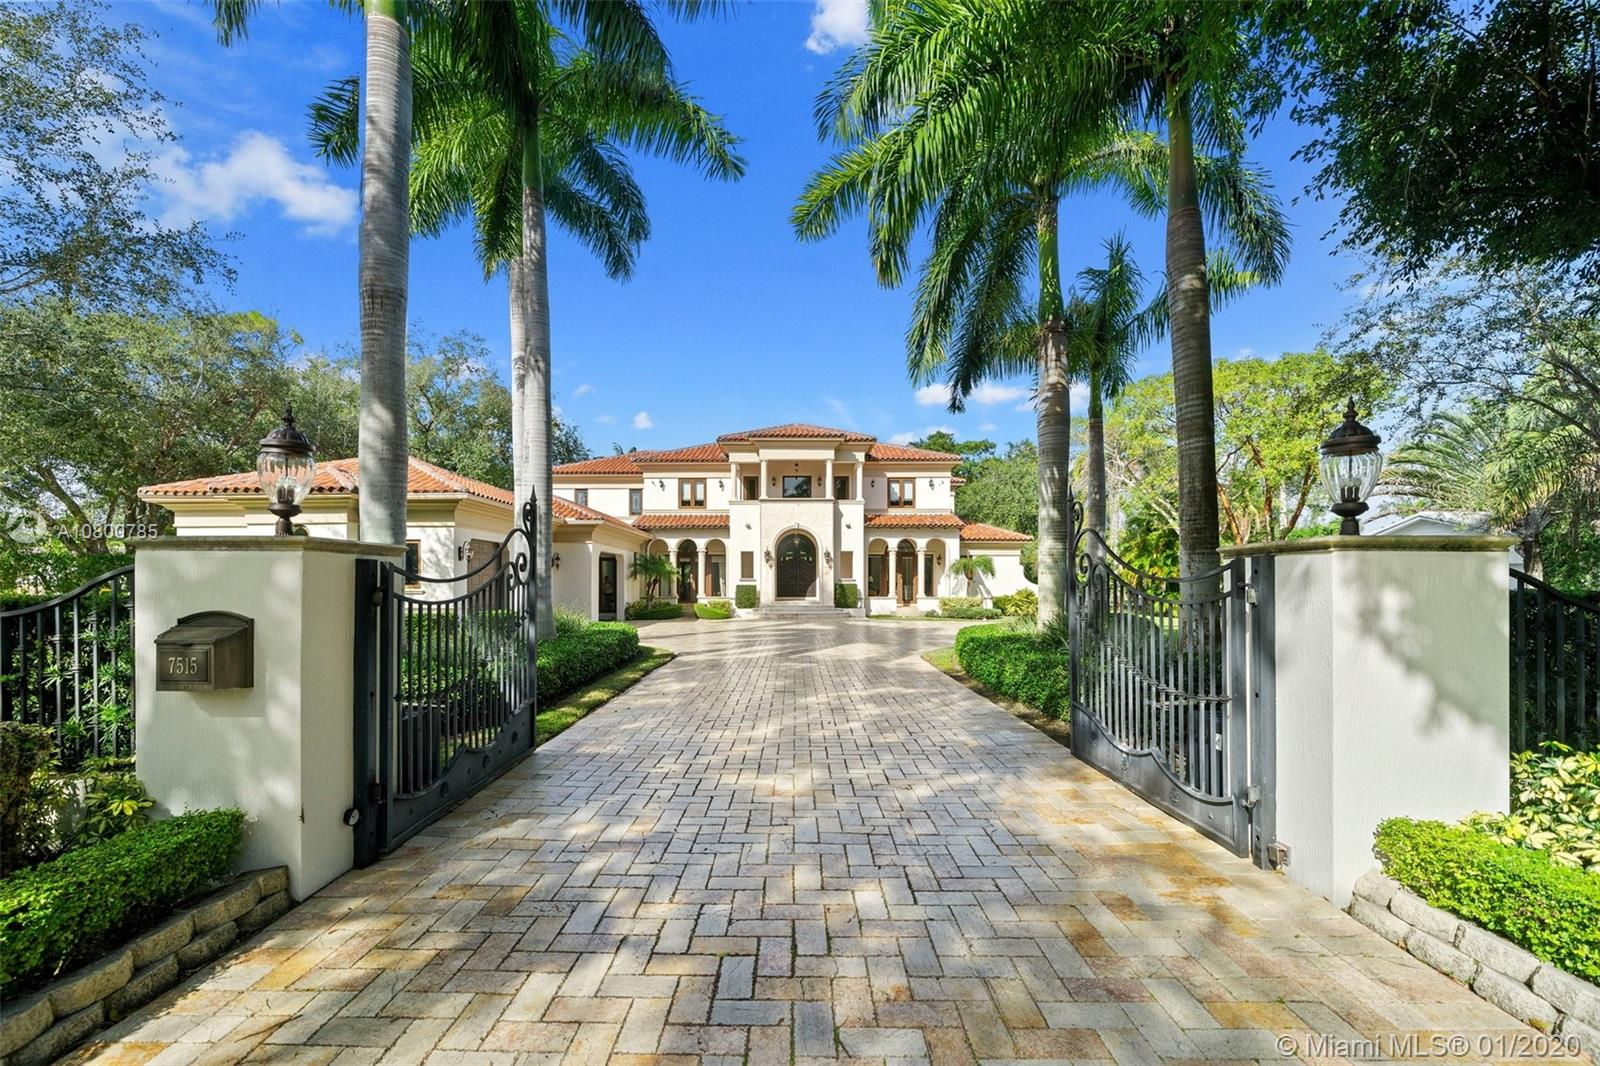 7515 SW 122nd St, Pinecrest, Florida 33156, 6 Bedrooms Bedrooms, ,7 BathroomsBathrooms,Residential,For Sale,7515 SW 122nd St,A10800785